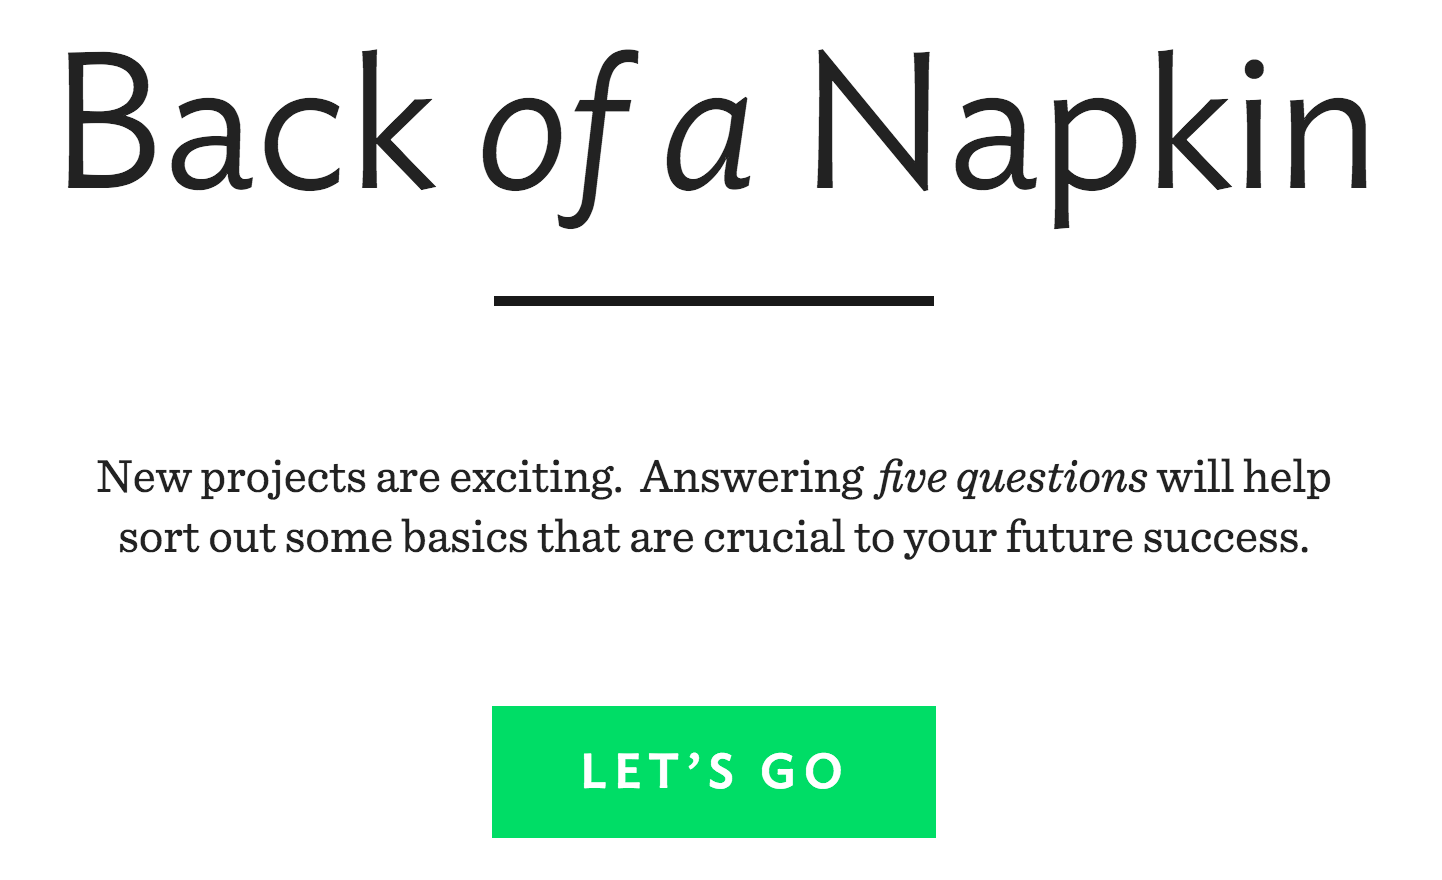 Back of a Napkin aims to get the specifics of building a startup out of the way